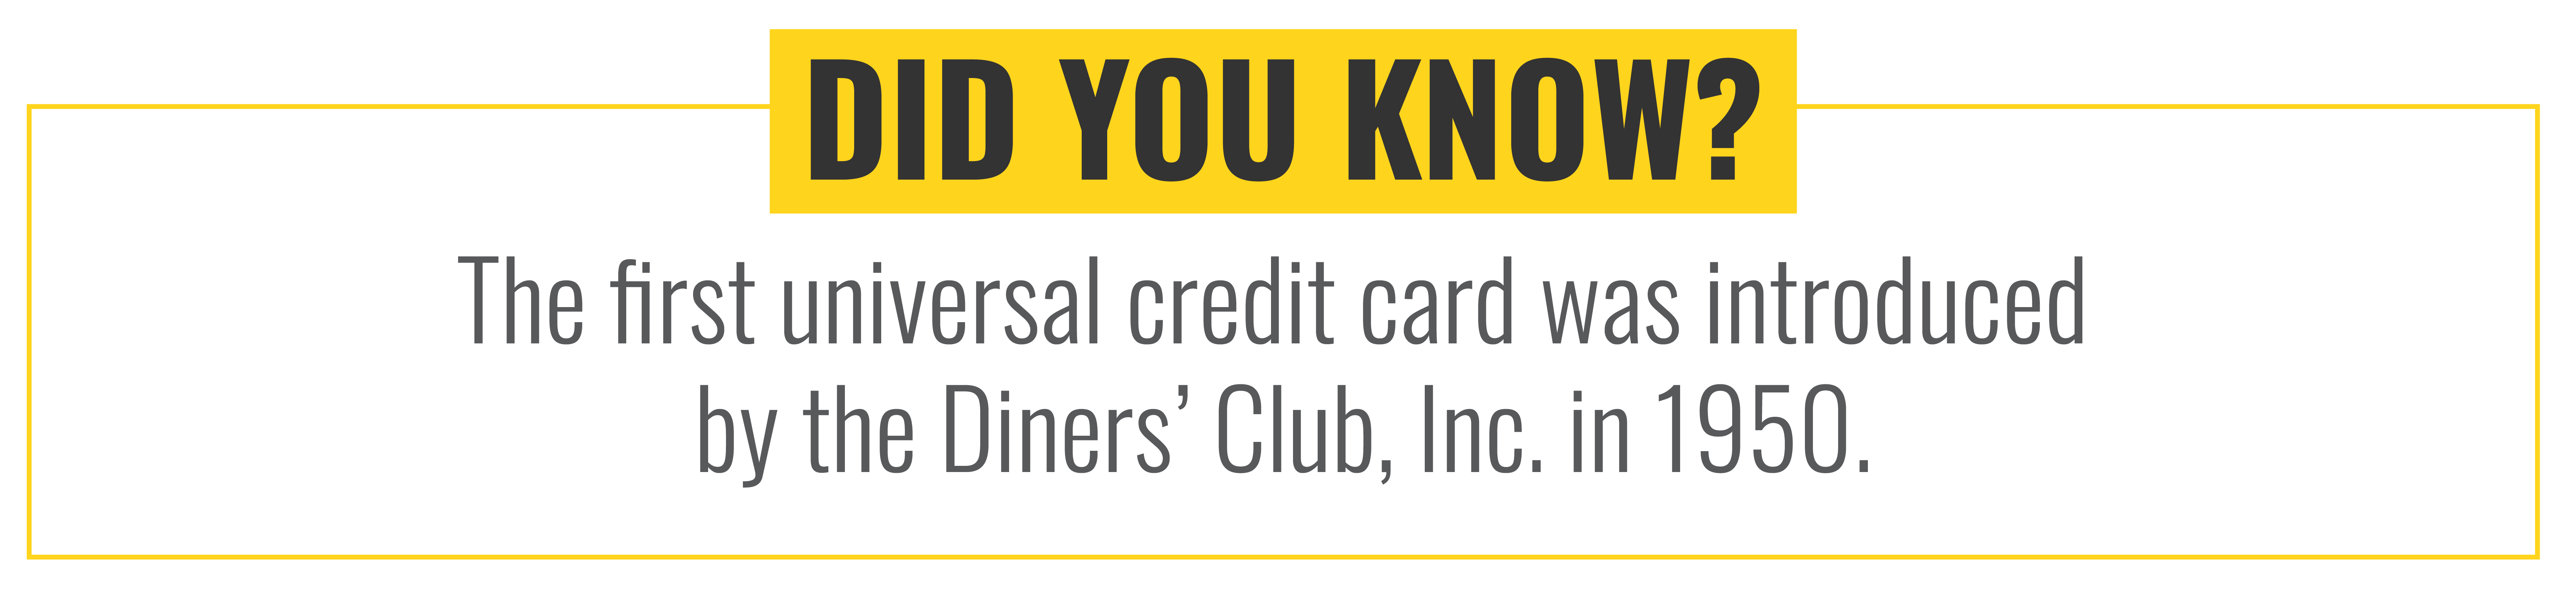 Did you know that the first universal credit card was introduced by the Diners' Club, Inc. in 1950.